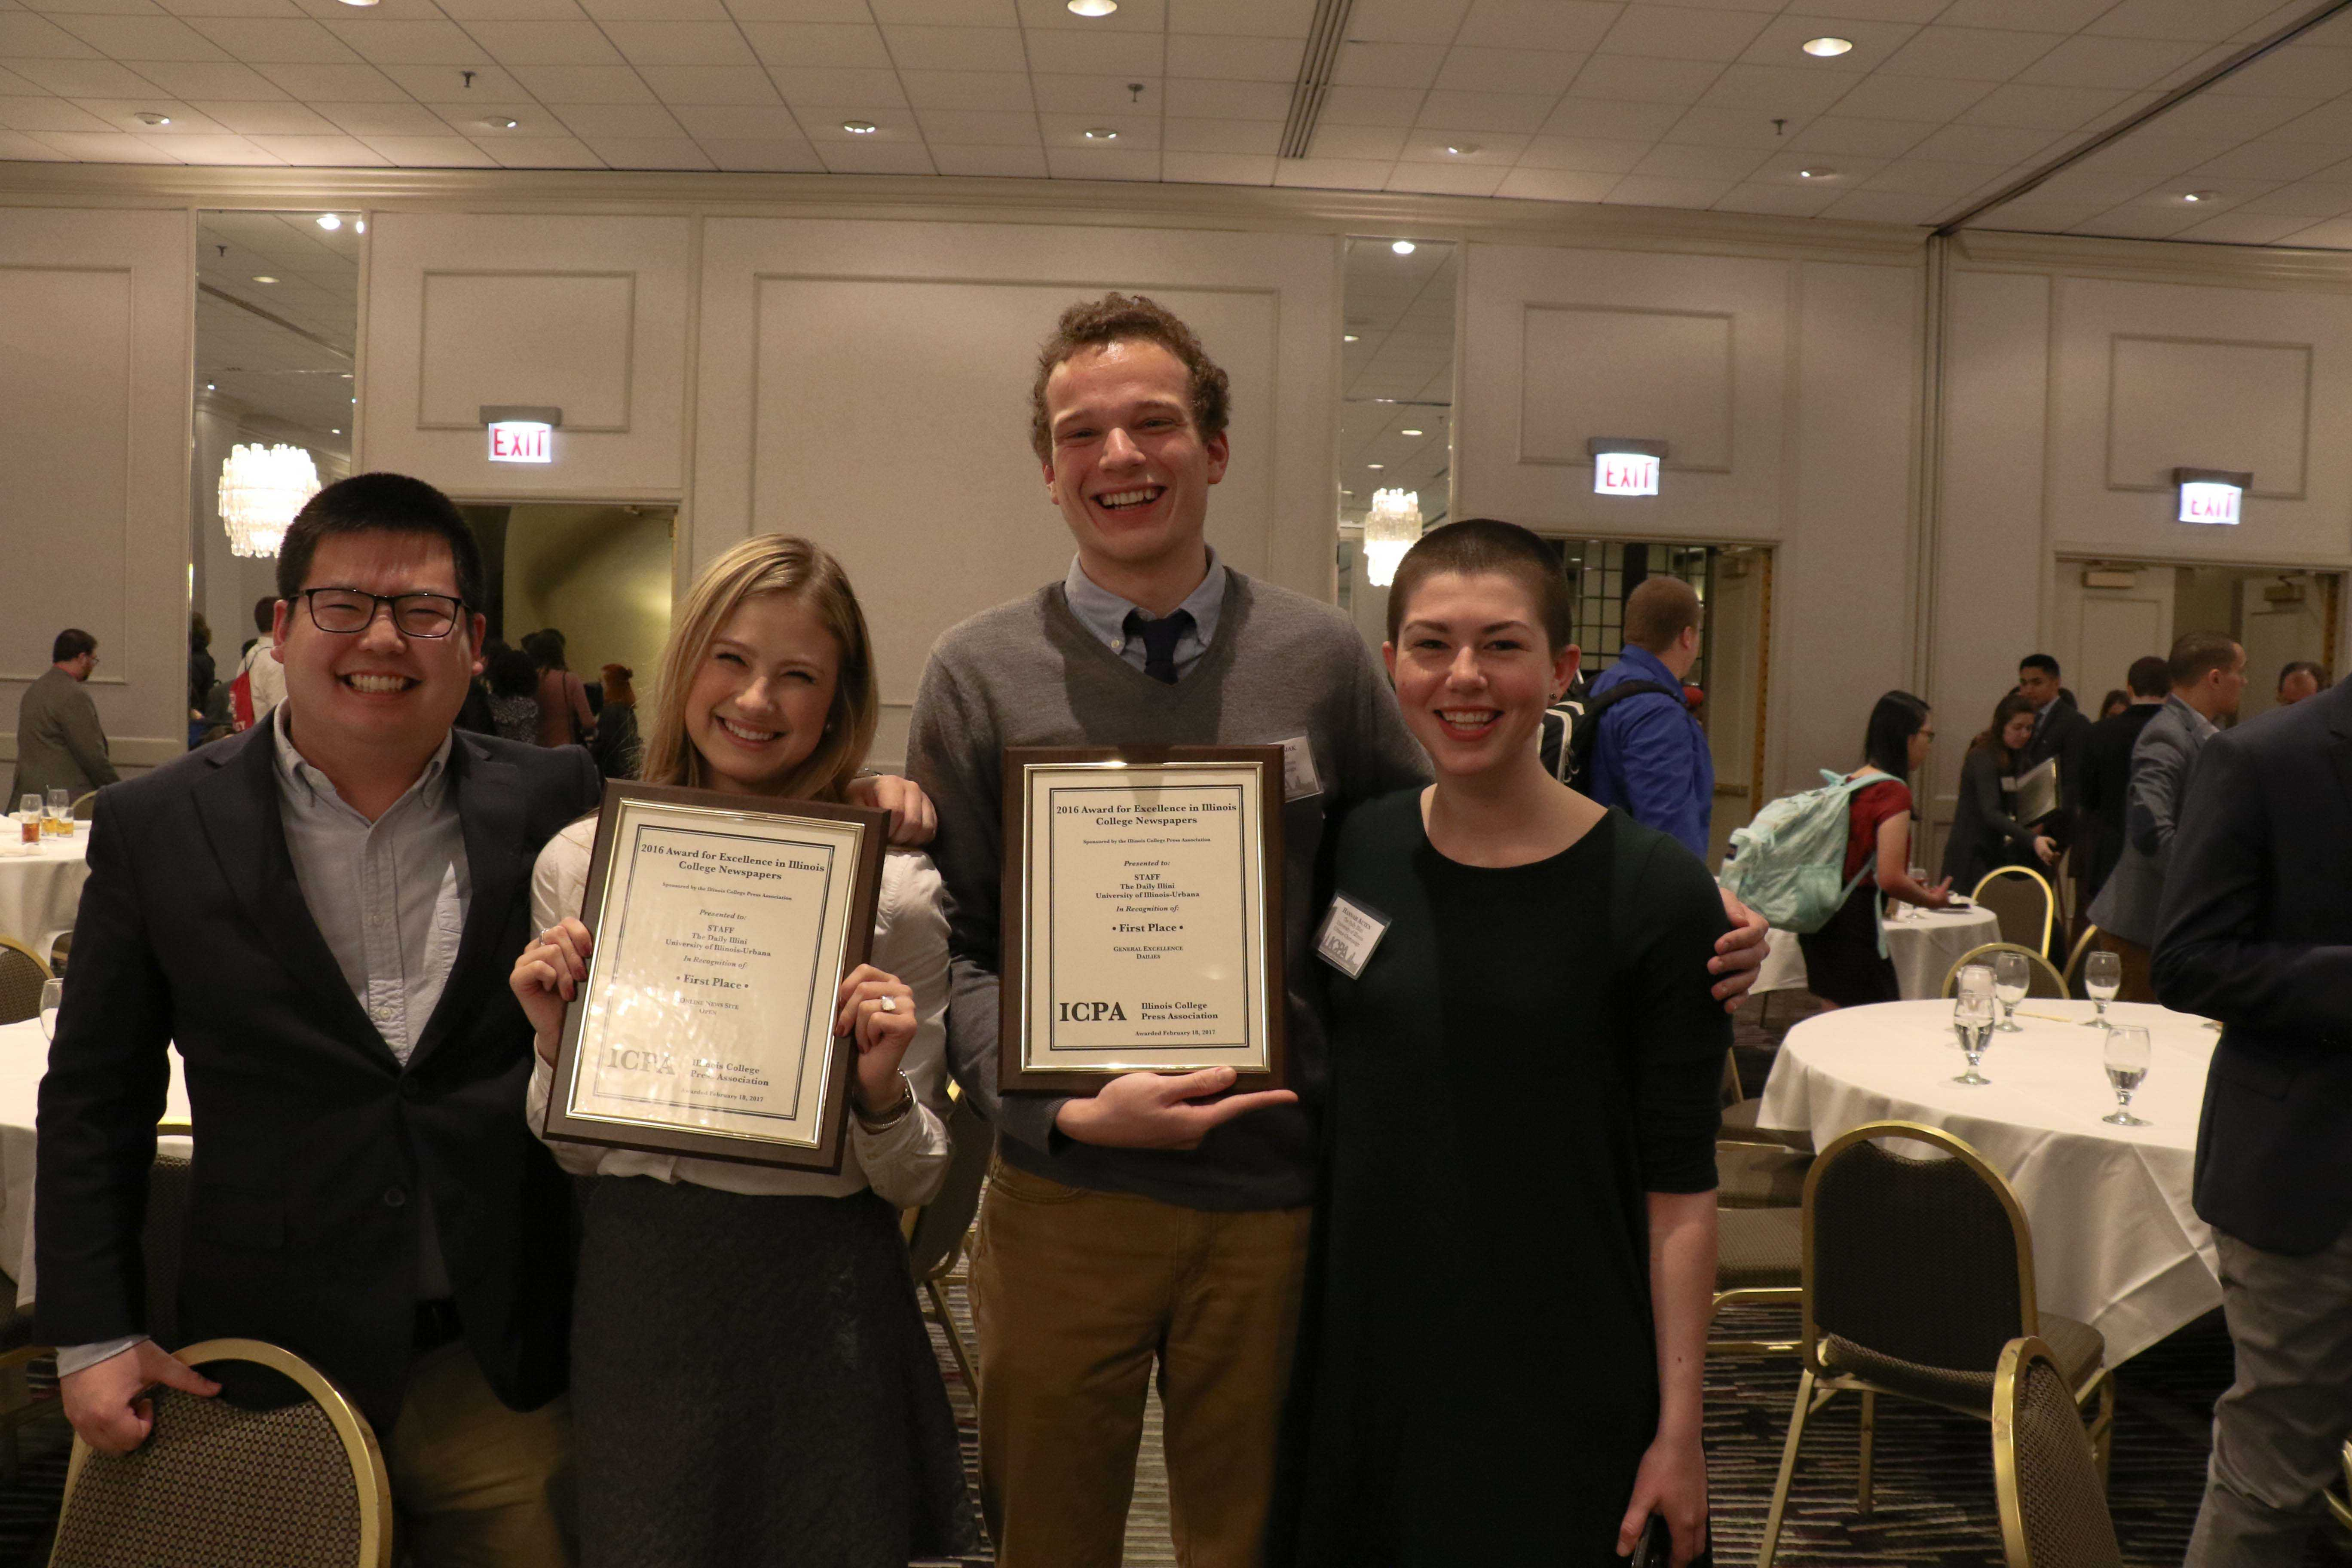 The Daily Illini executive team holds two of the awards from this weekend's Illinois College Press Association ceremony.